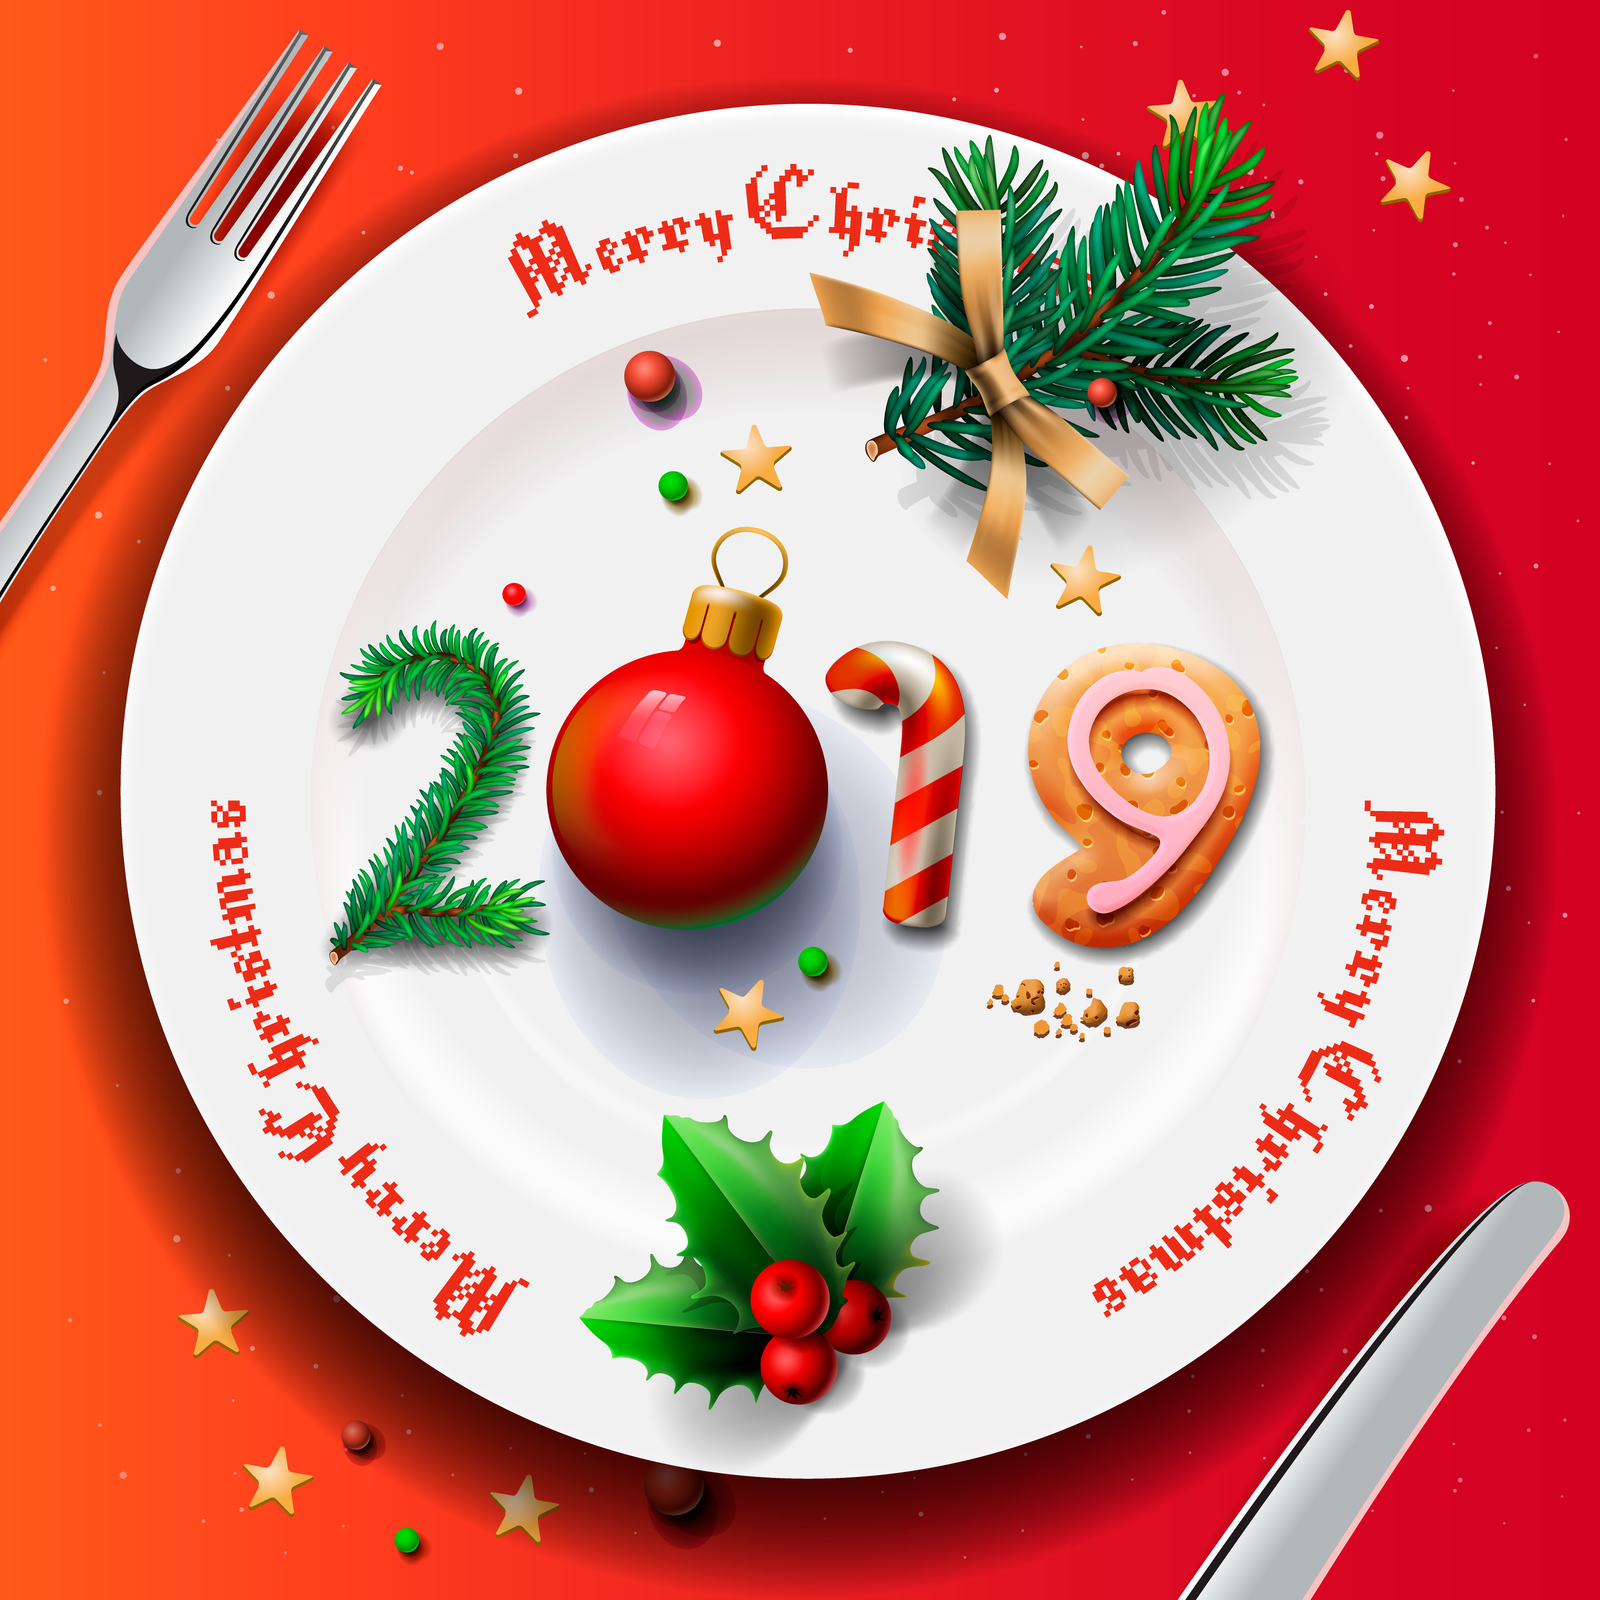 Merry Christmas 2019 social media templates, modern promotion web banners